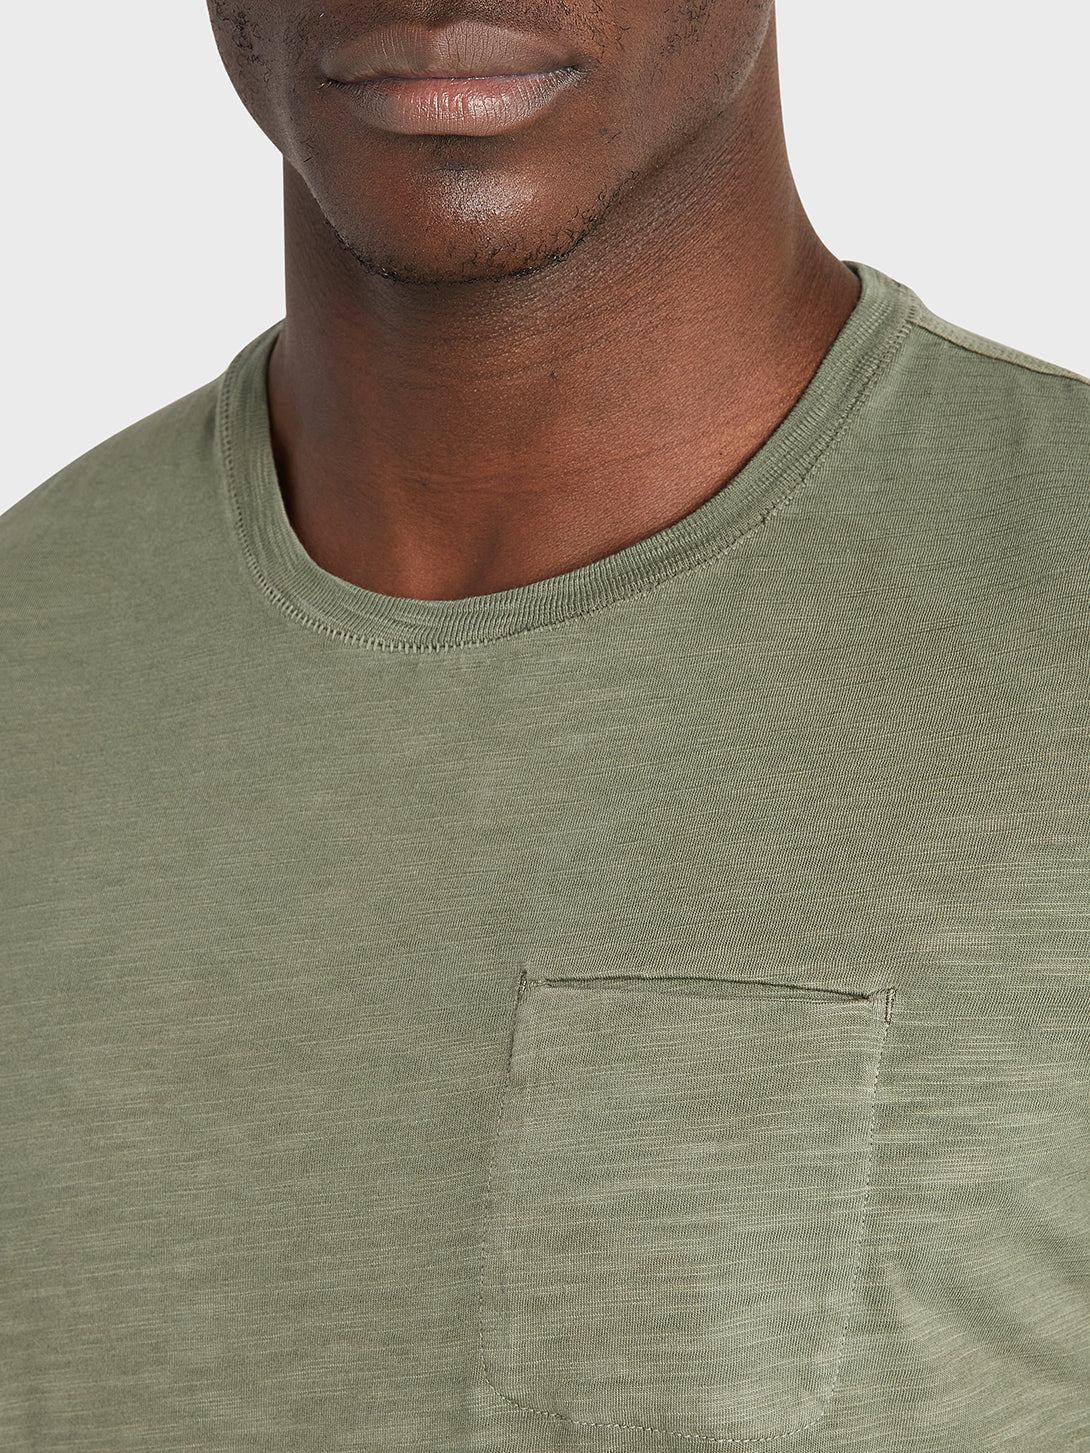 ONS Clothing Men's tee in OLIVE